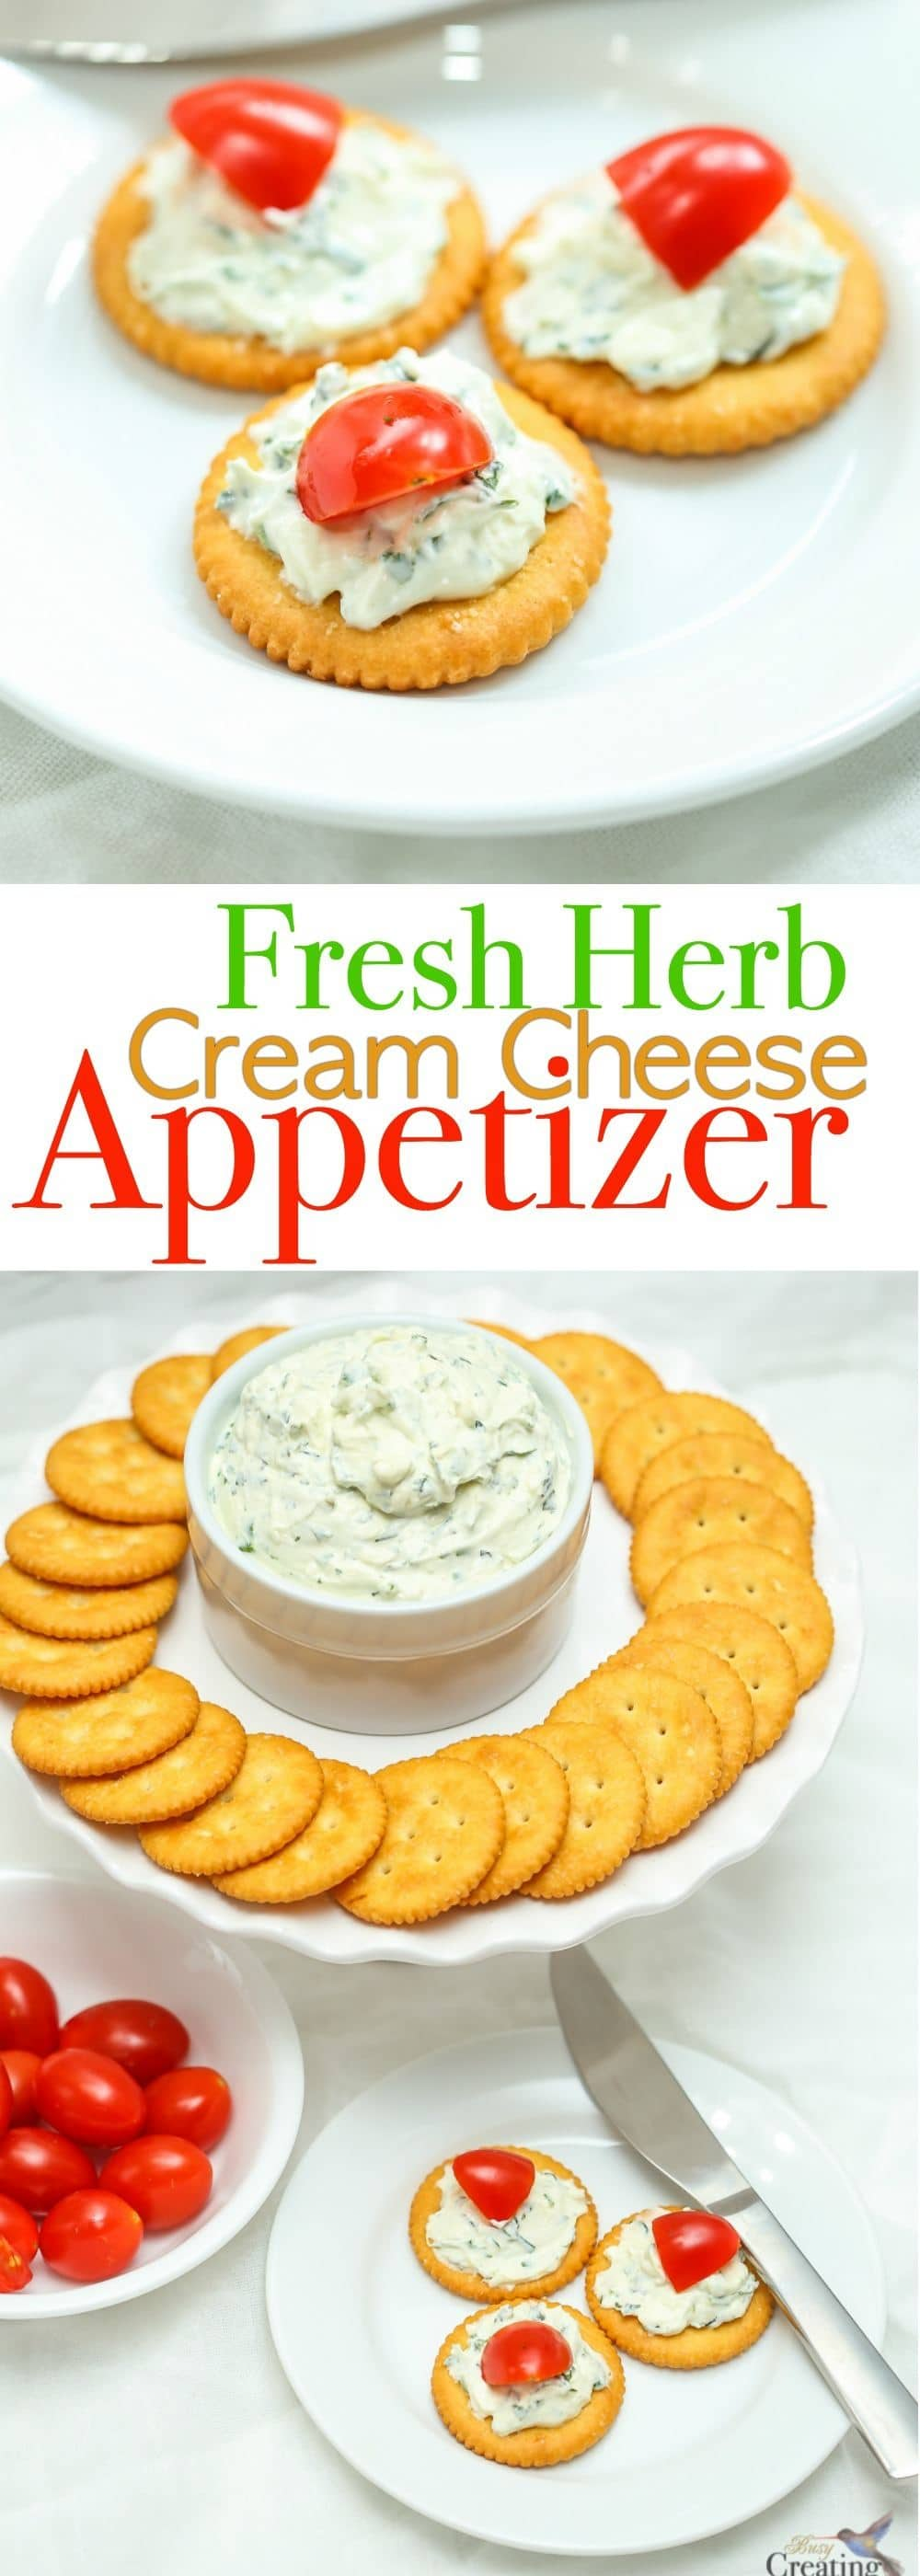 Easy herb cream cheese spread recipe and delicious spring appetizers discover easy entertaining with a simple diy herb cream cheese spread recipe made with fresh herbs solutioingenieria Images